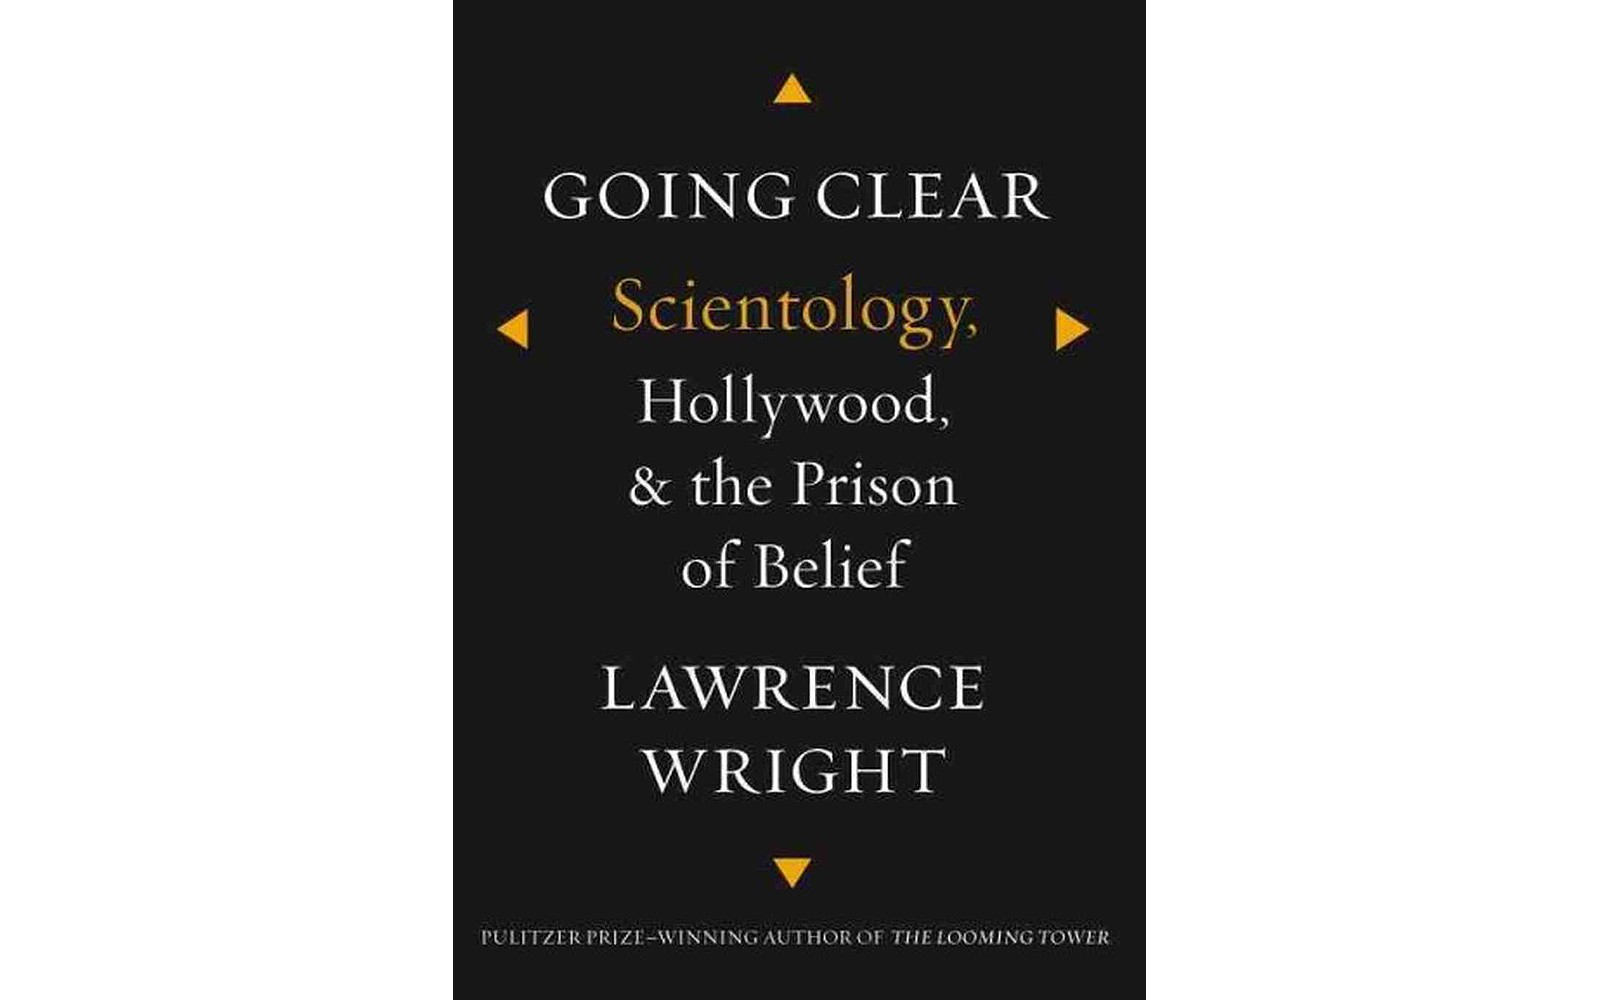 Going Clear: Scientology, Hollywood and the Prison of Belief - BY LAWRENCE WRIGHT - KNOPF